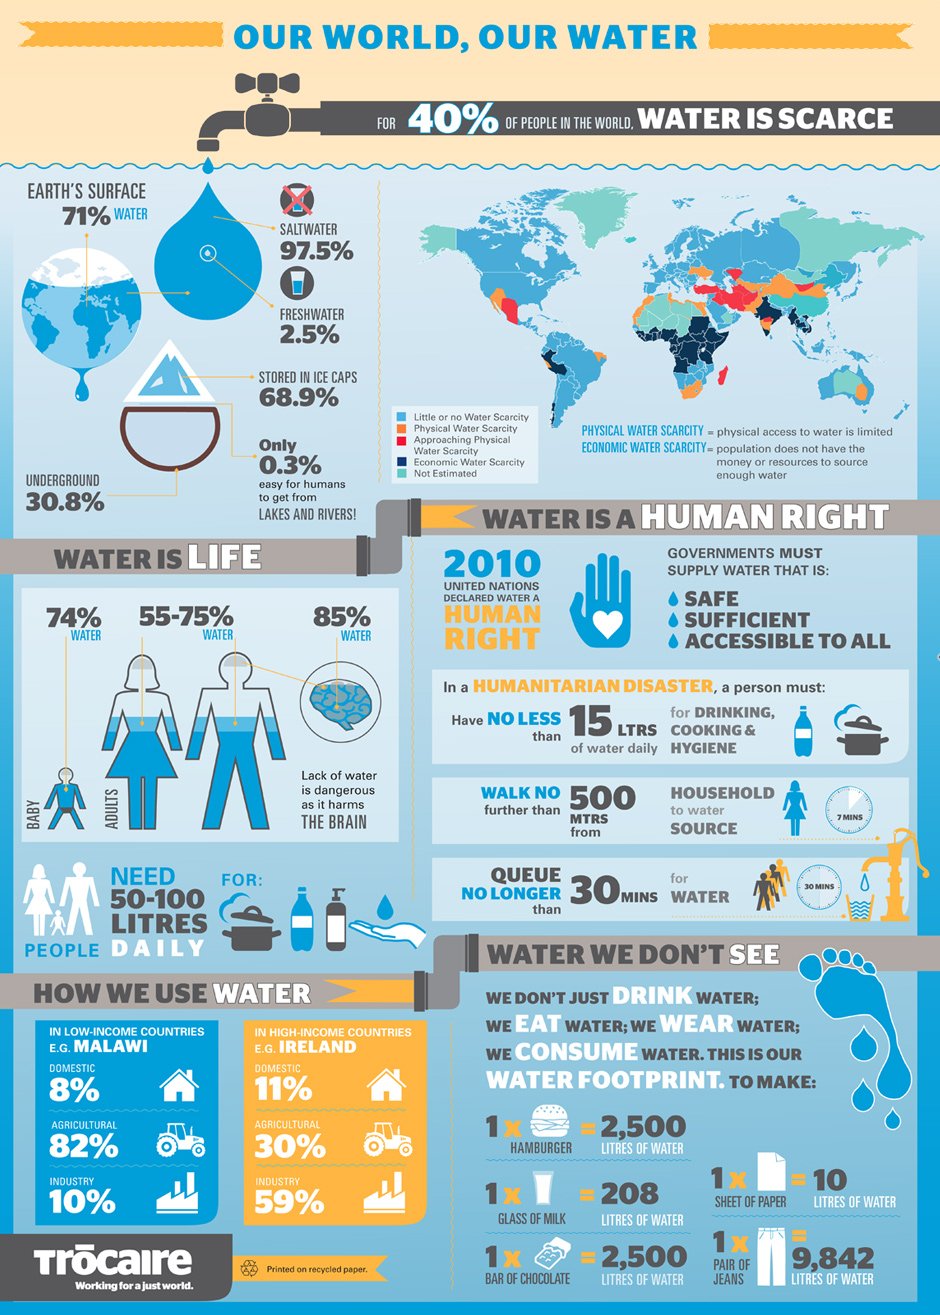 Trocaire Infographic - Where the water goes page 1